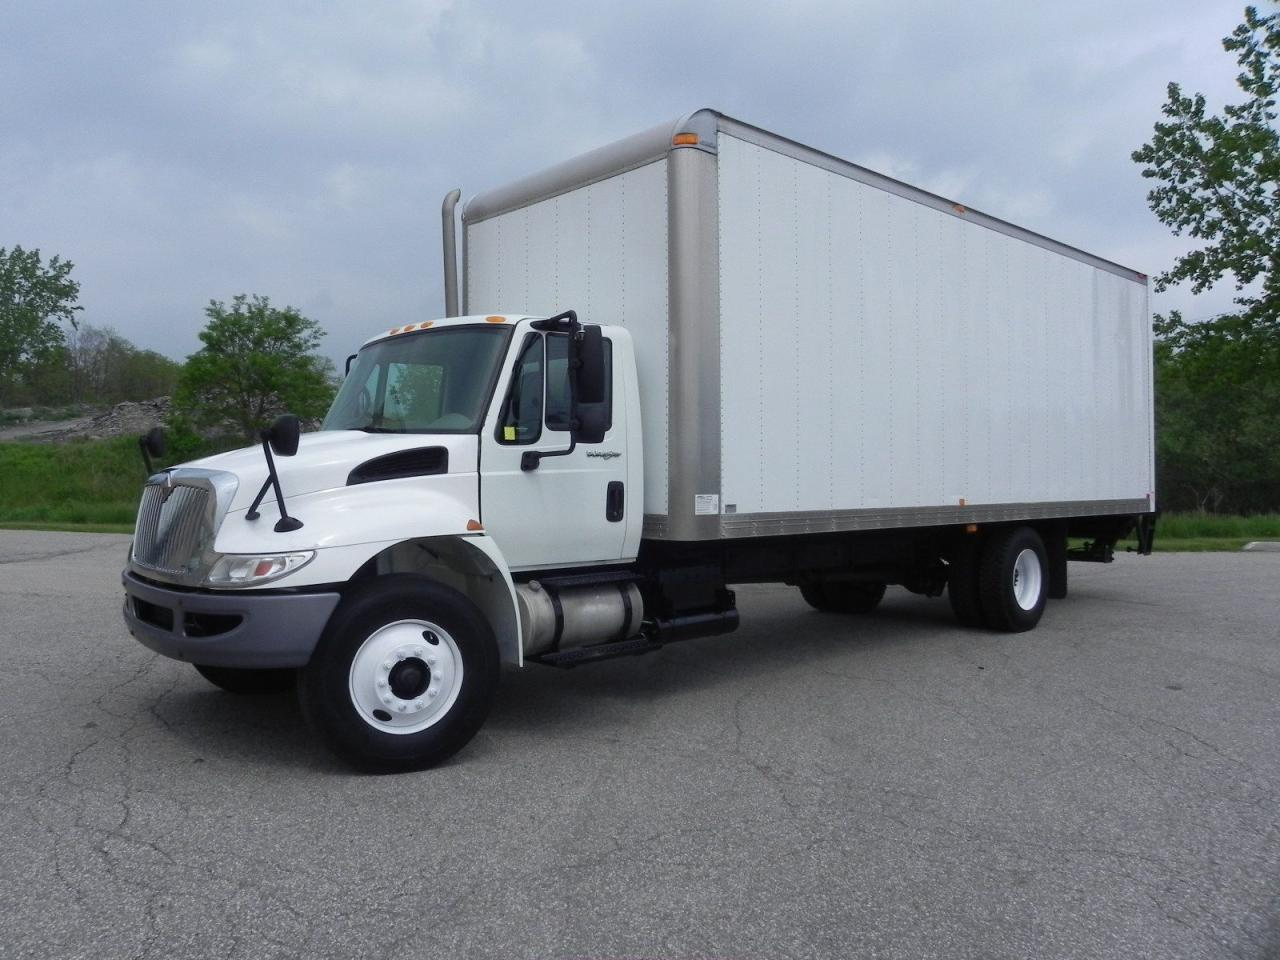 used 2011 international durastar 40s curtain side 26 foot box truck with lift for sale in brantford ontario carpages ca [ 1280 x 960 Pixel ]